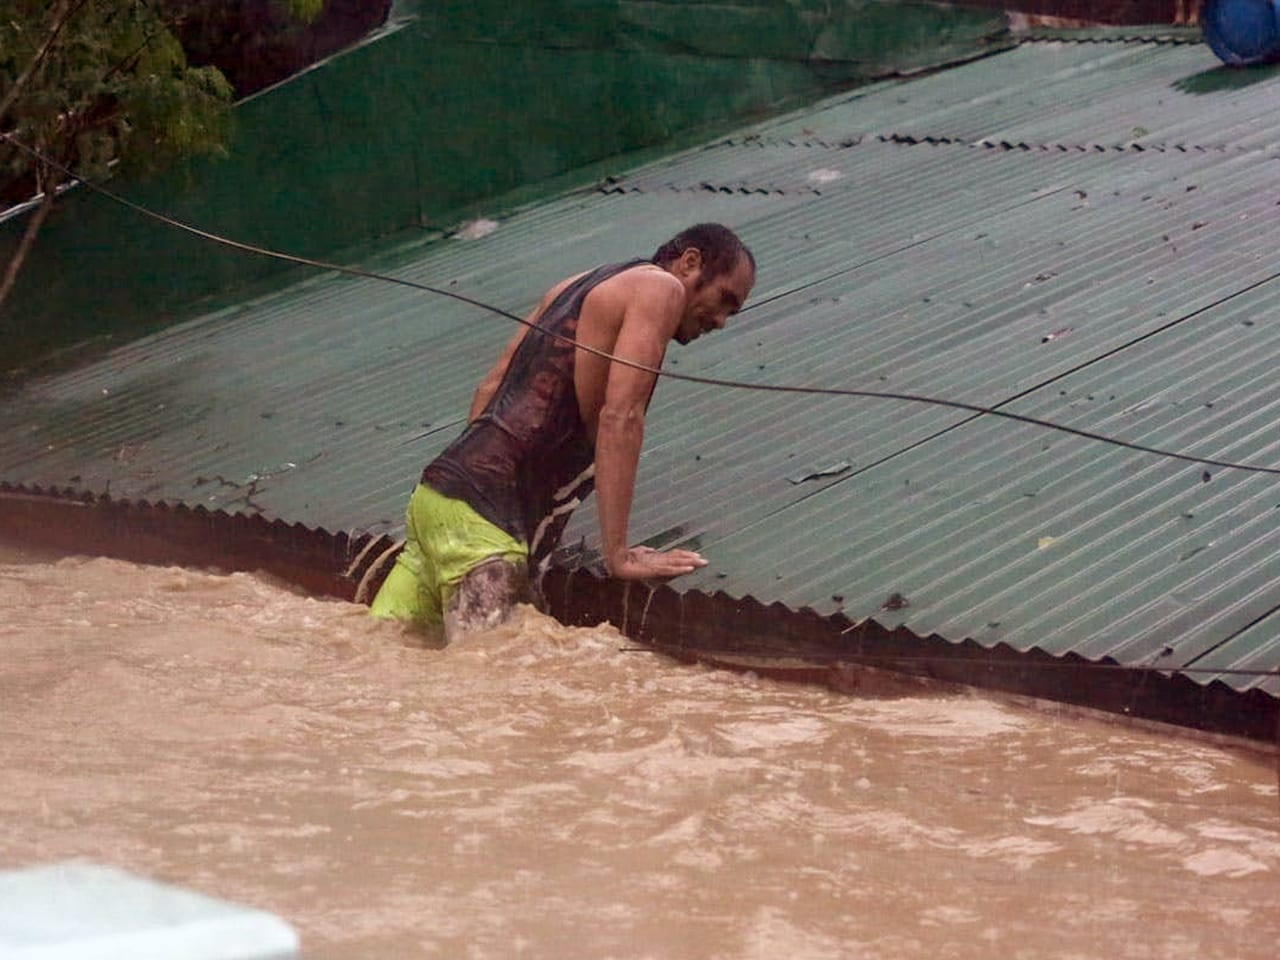 A man lifts himself onto a roof as his legs are submerged in flood water.